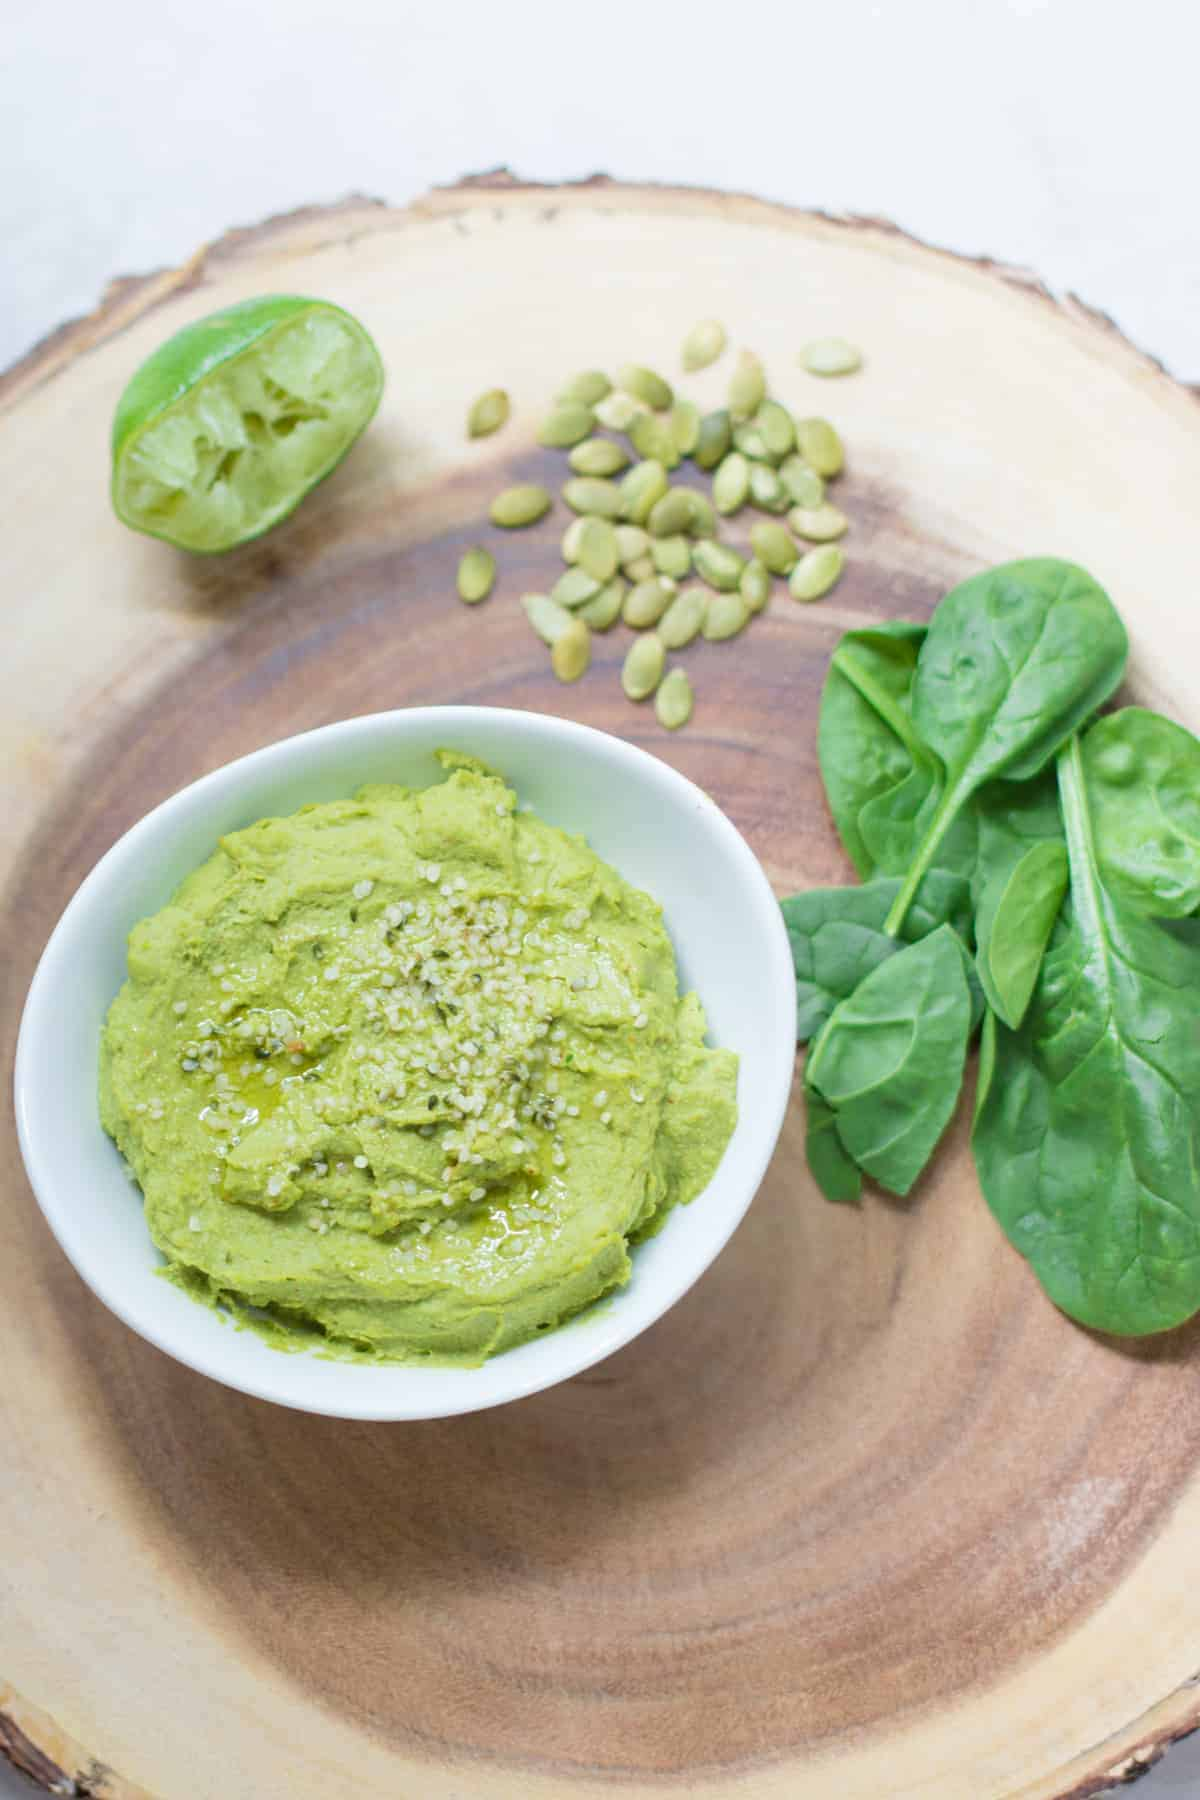 hummus in white bowl on wooden board along with pumpkin seeds, spinach, and lime